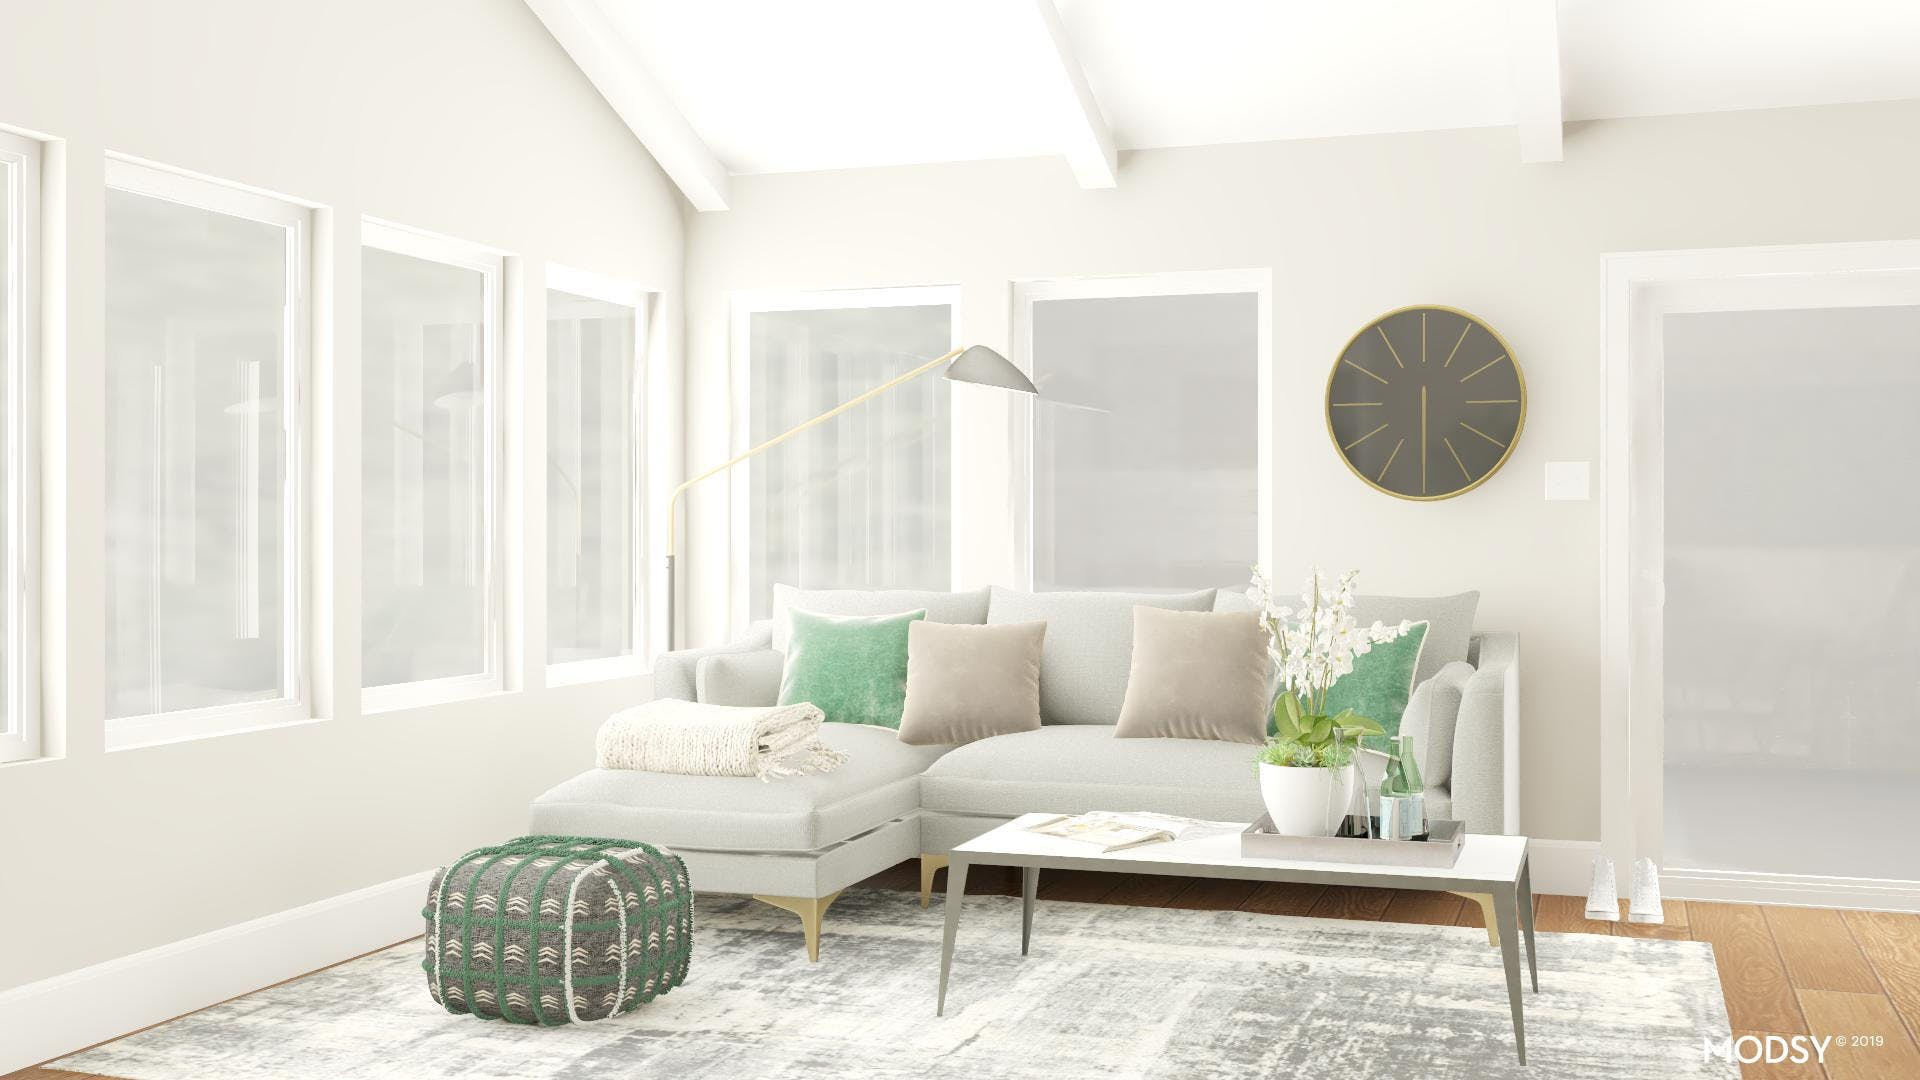 Less Is More With the Right Lighting and Pillows Galore